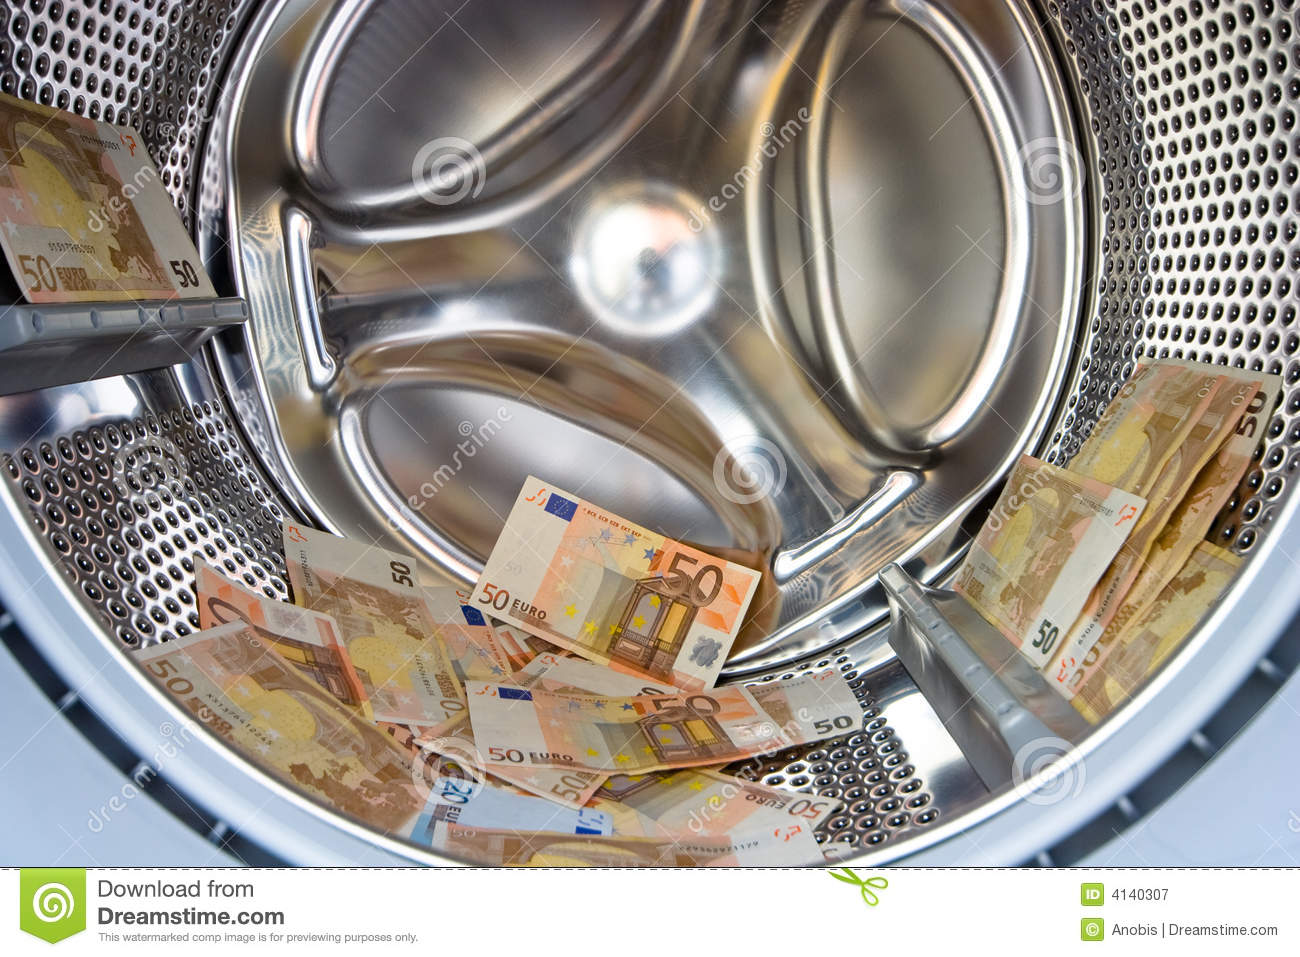 Washer inside with money